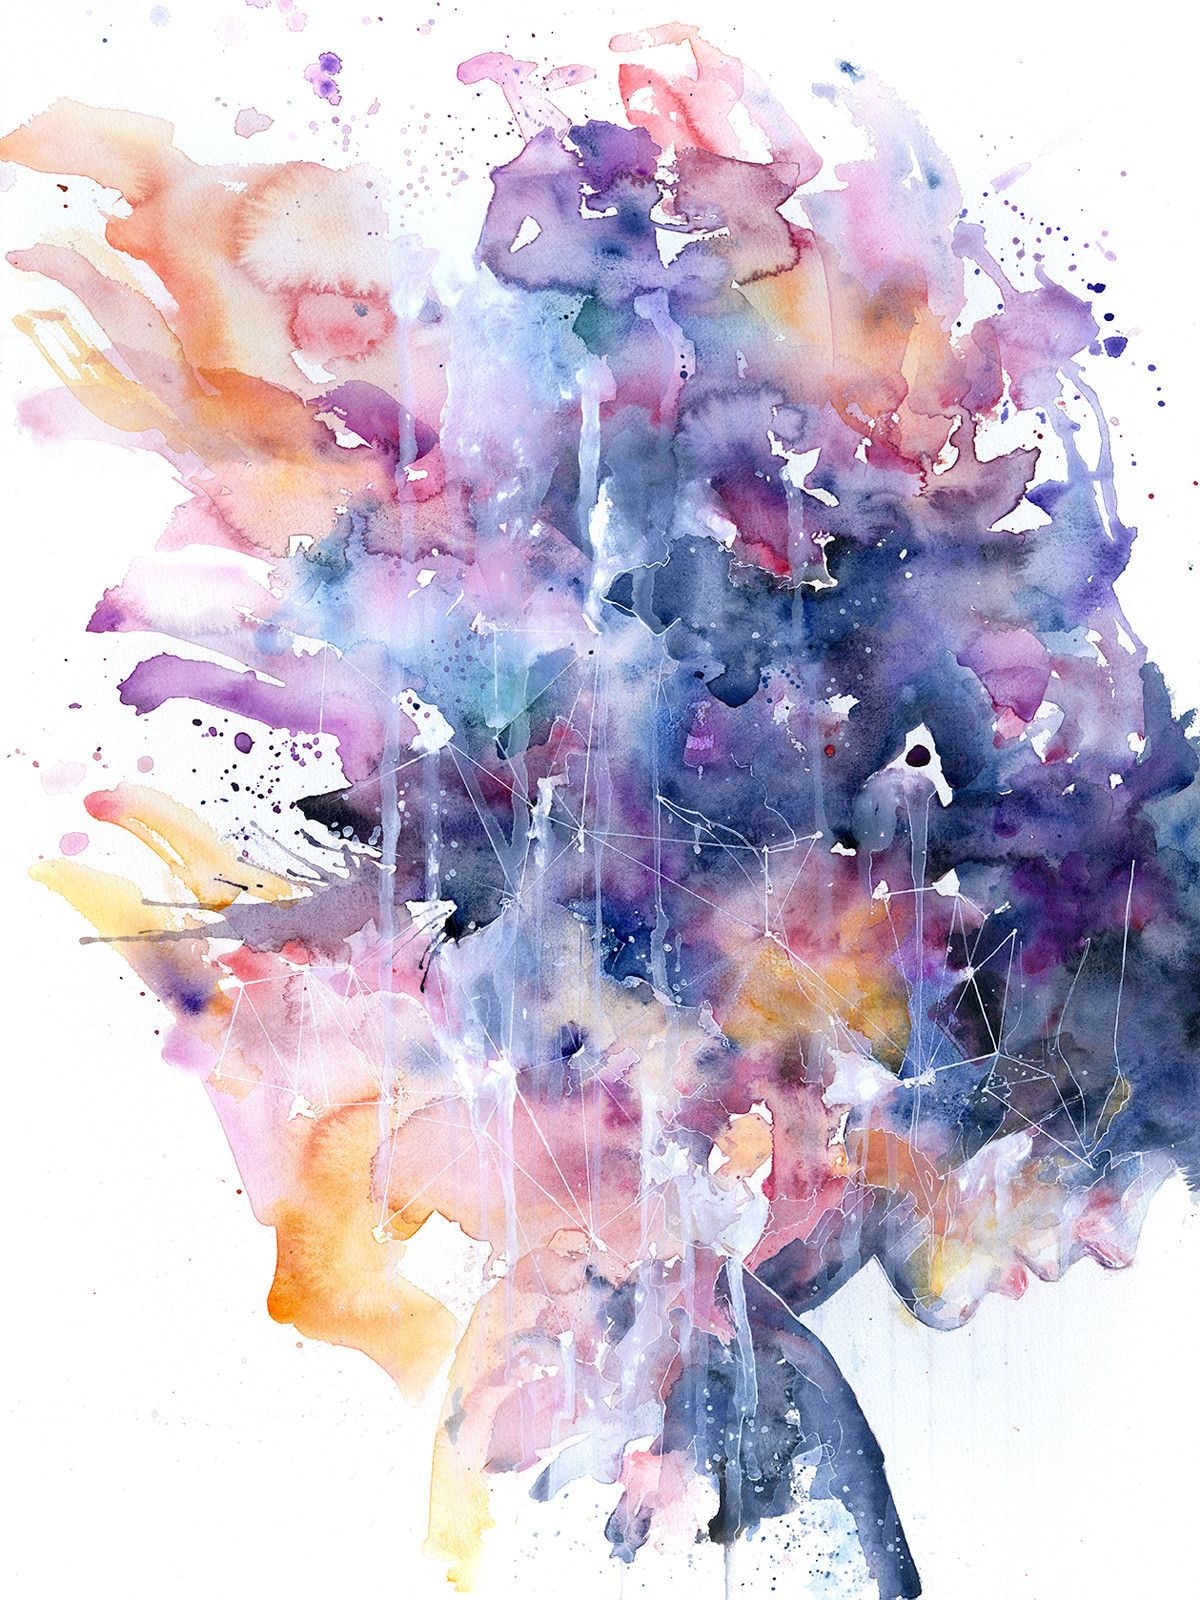 Artist: Silvia Pelissero Title: In a Single Moment All of Her Greatness Collapsed (Print) Size: 21 x 28   Silvia Pelissero, a painter best known as Agnes Cecile, was born in Rome, Italy. Using simple images coupled with abstract color and detail, Agnes Cecile creates rich, emotional human po...